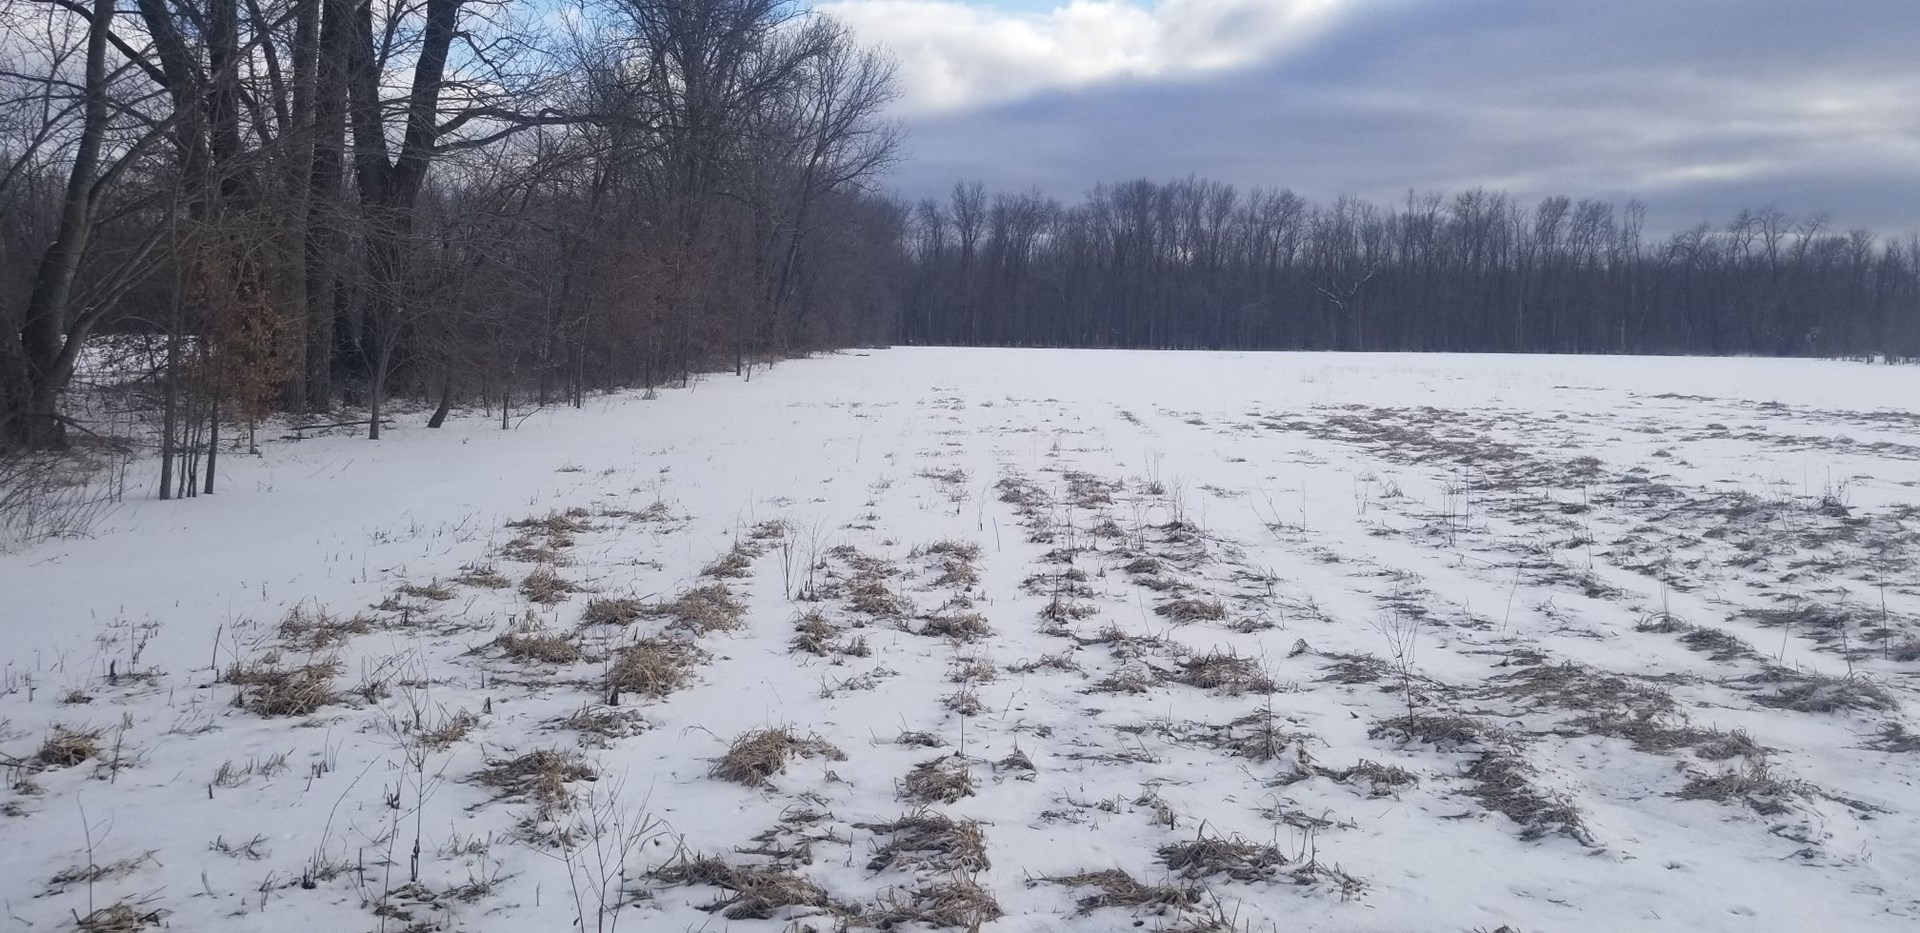 MO LAND FOR SALE, RECREATIONAL HUNTING LAND, ROW CROP